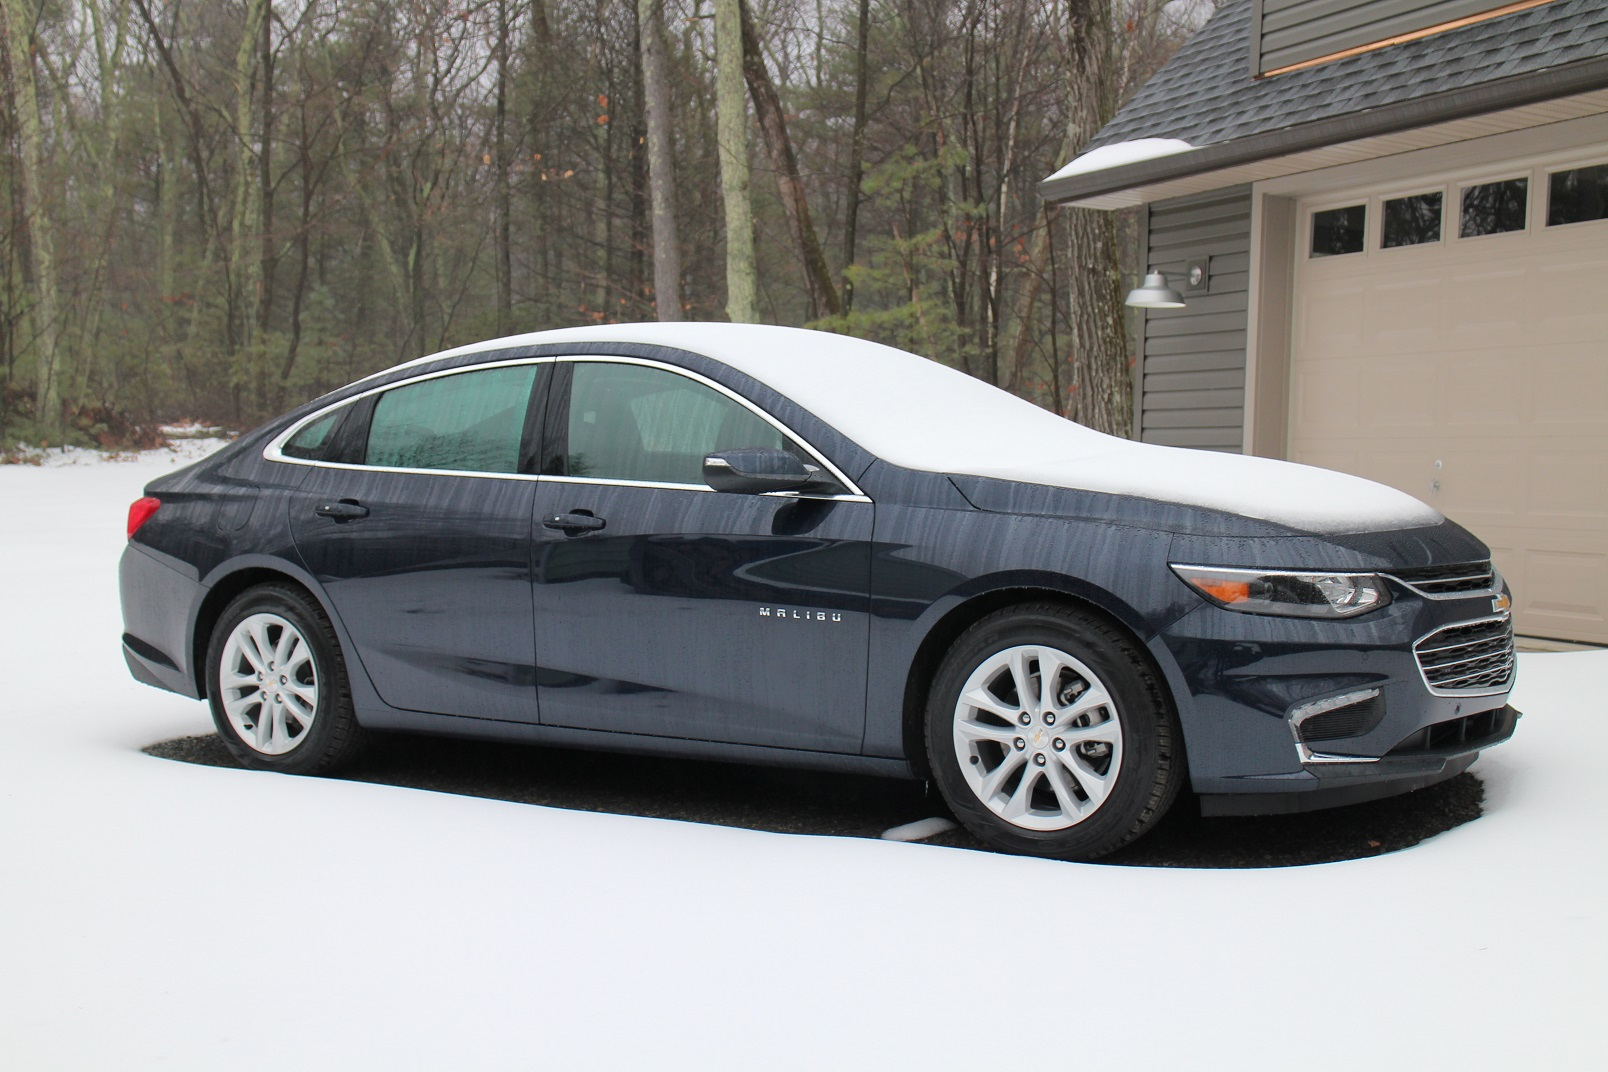 2016 Chevrolet Malibu Hybrid First Drive Of Sedan Using